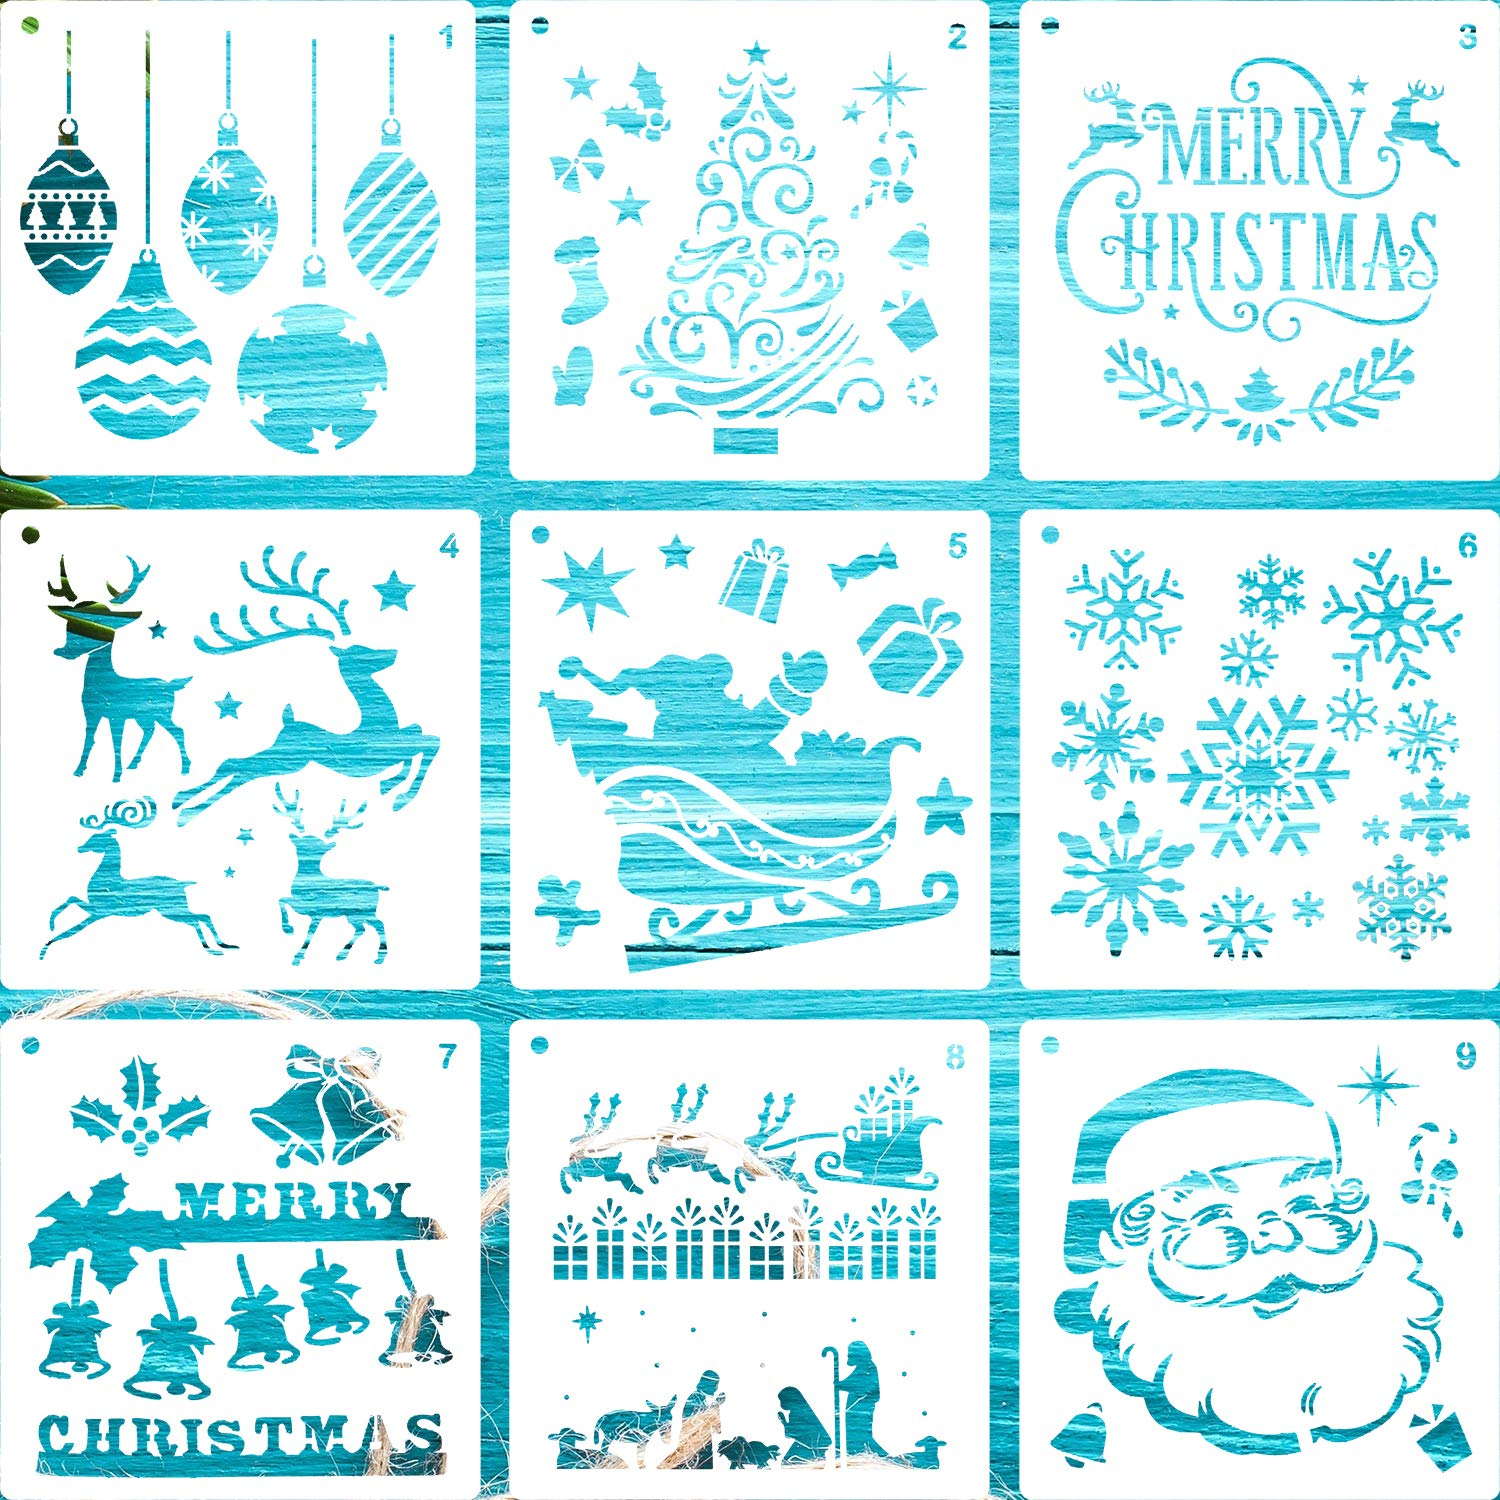 Christmas Stencils are a must have.